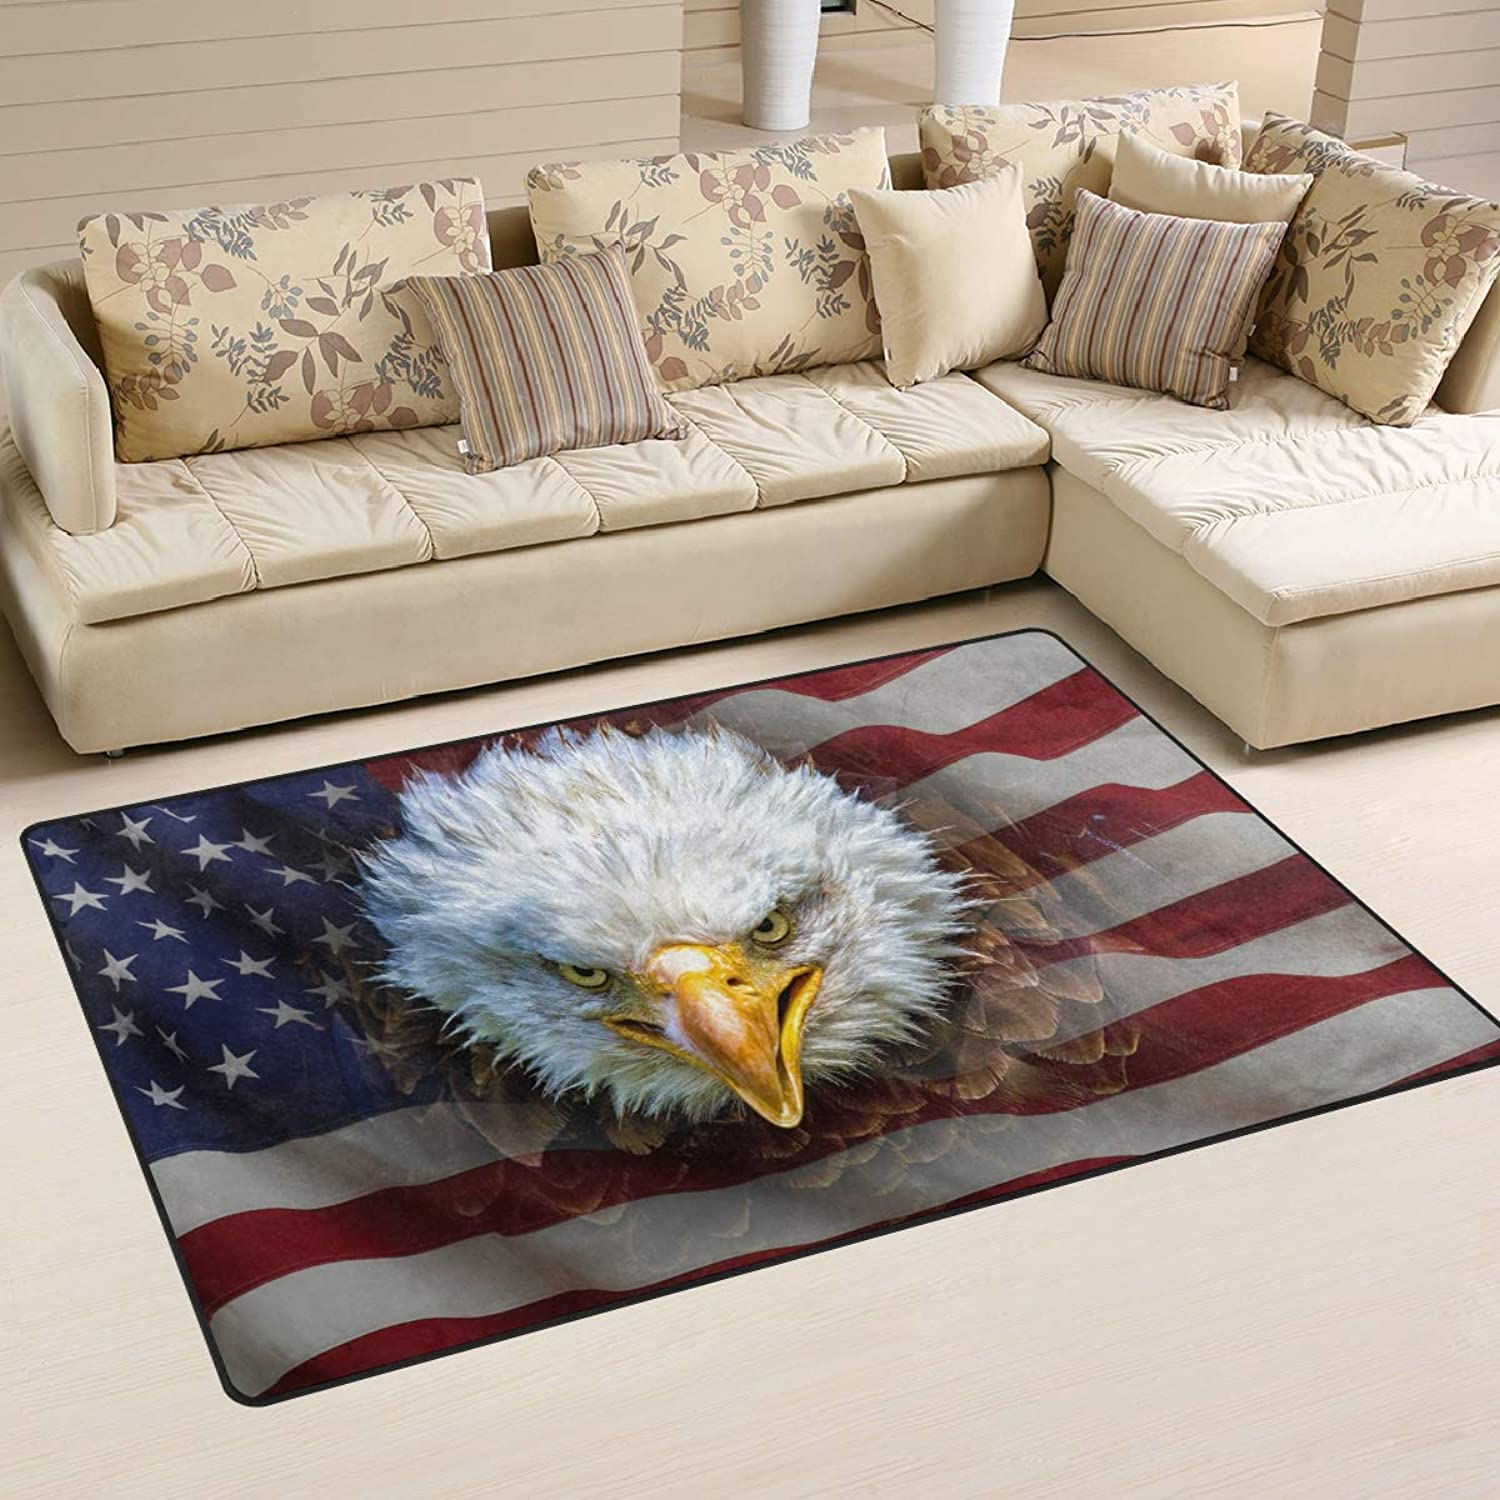 Area Rugs Doormats American Flag Bald Eagle 5'x3'3 (60x39 Inches) Non-Slip Floor Mat Soft Carpet for Living Dining Bedroom Home